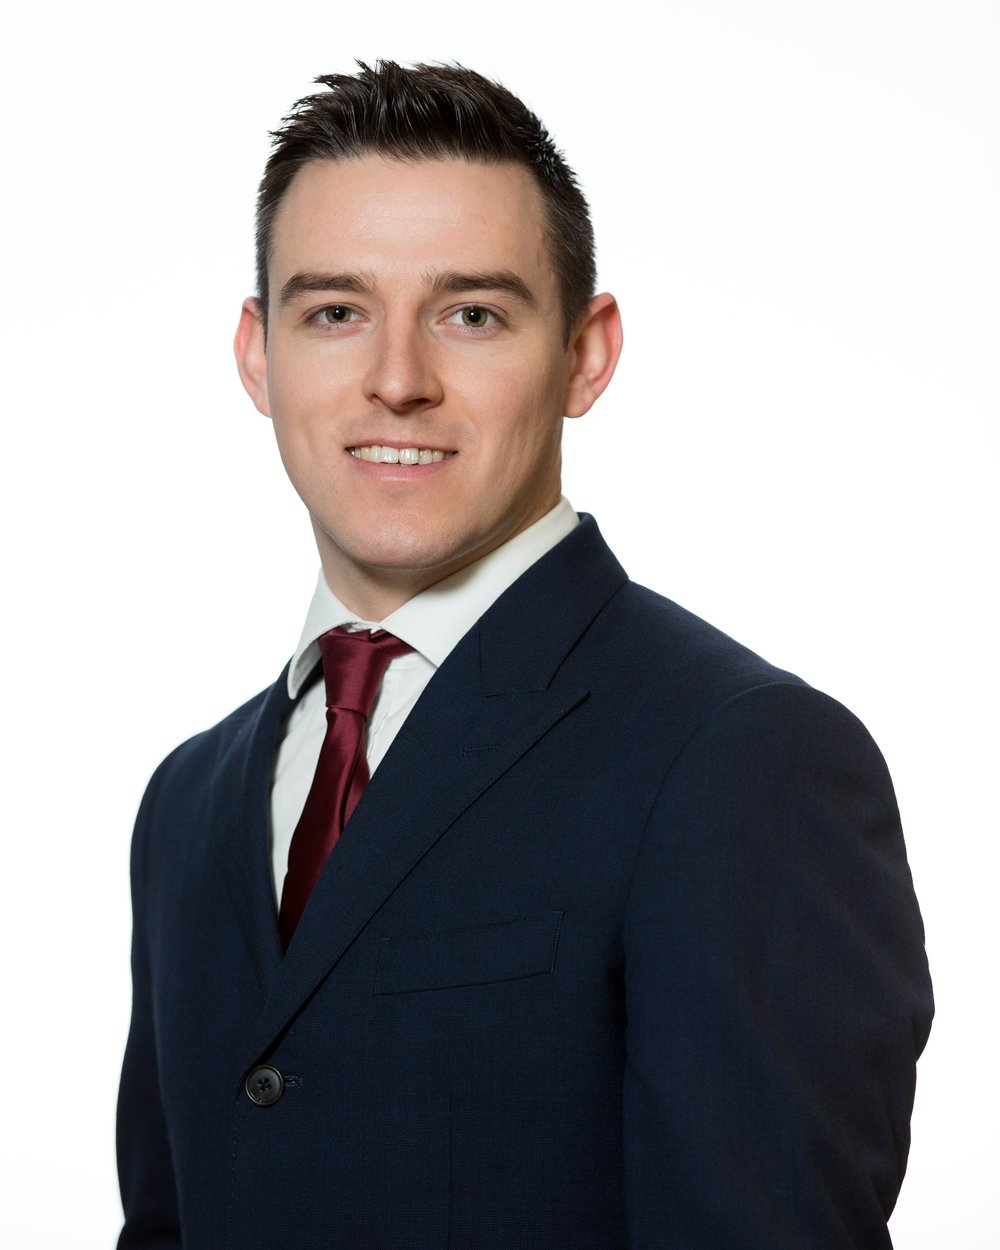 COLM BARRY    ASSOCIATE DIRECTOR    COLM.BARRY@CSCONSULTING.IE